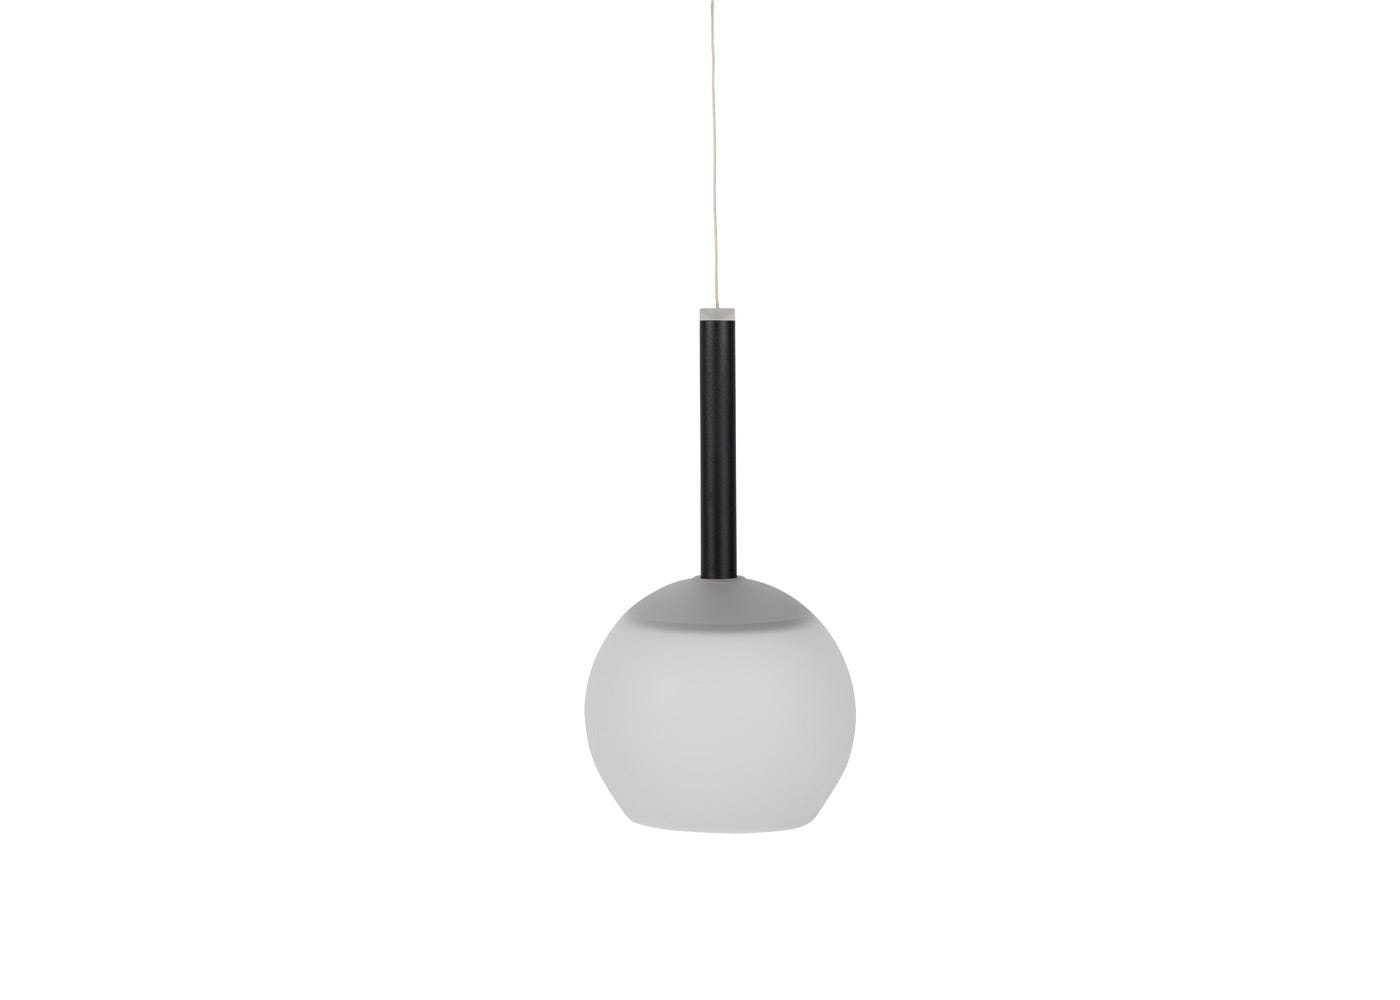 As shown: Disc long LED pendant in black with frosted glass shade (sold separately) - off.